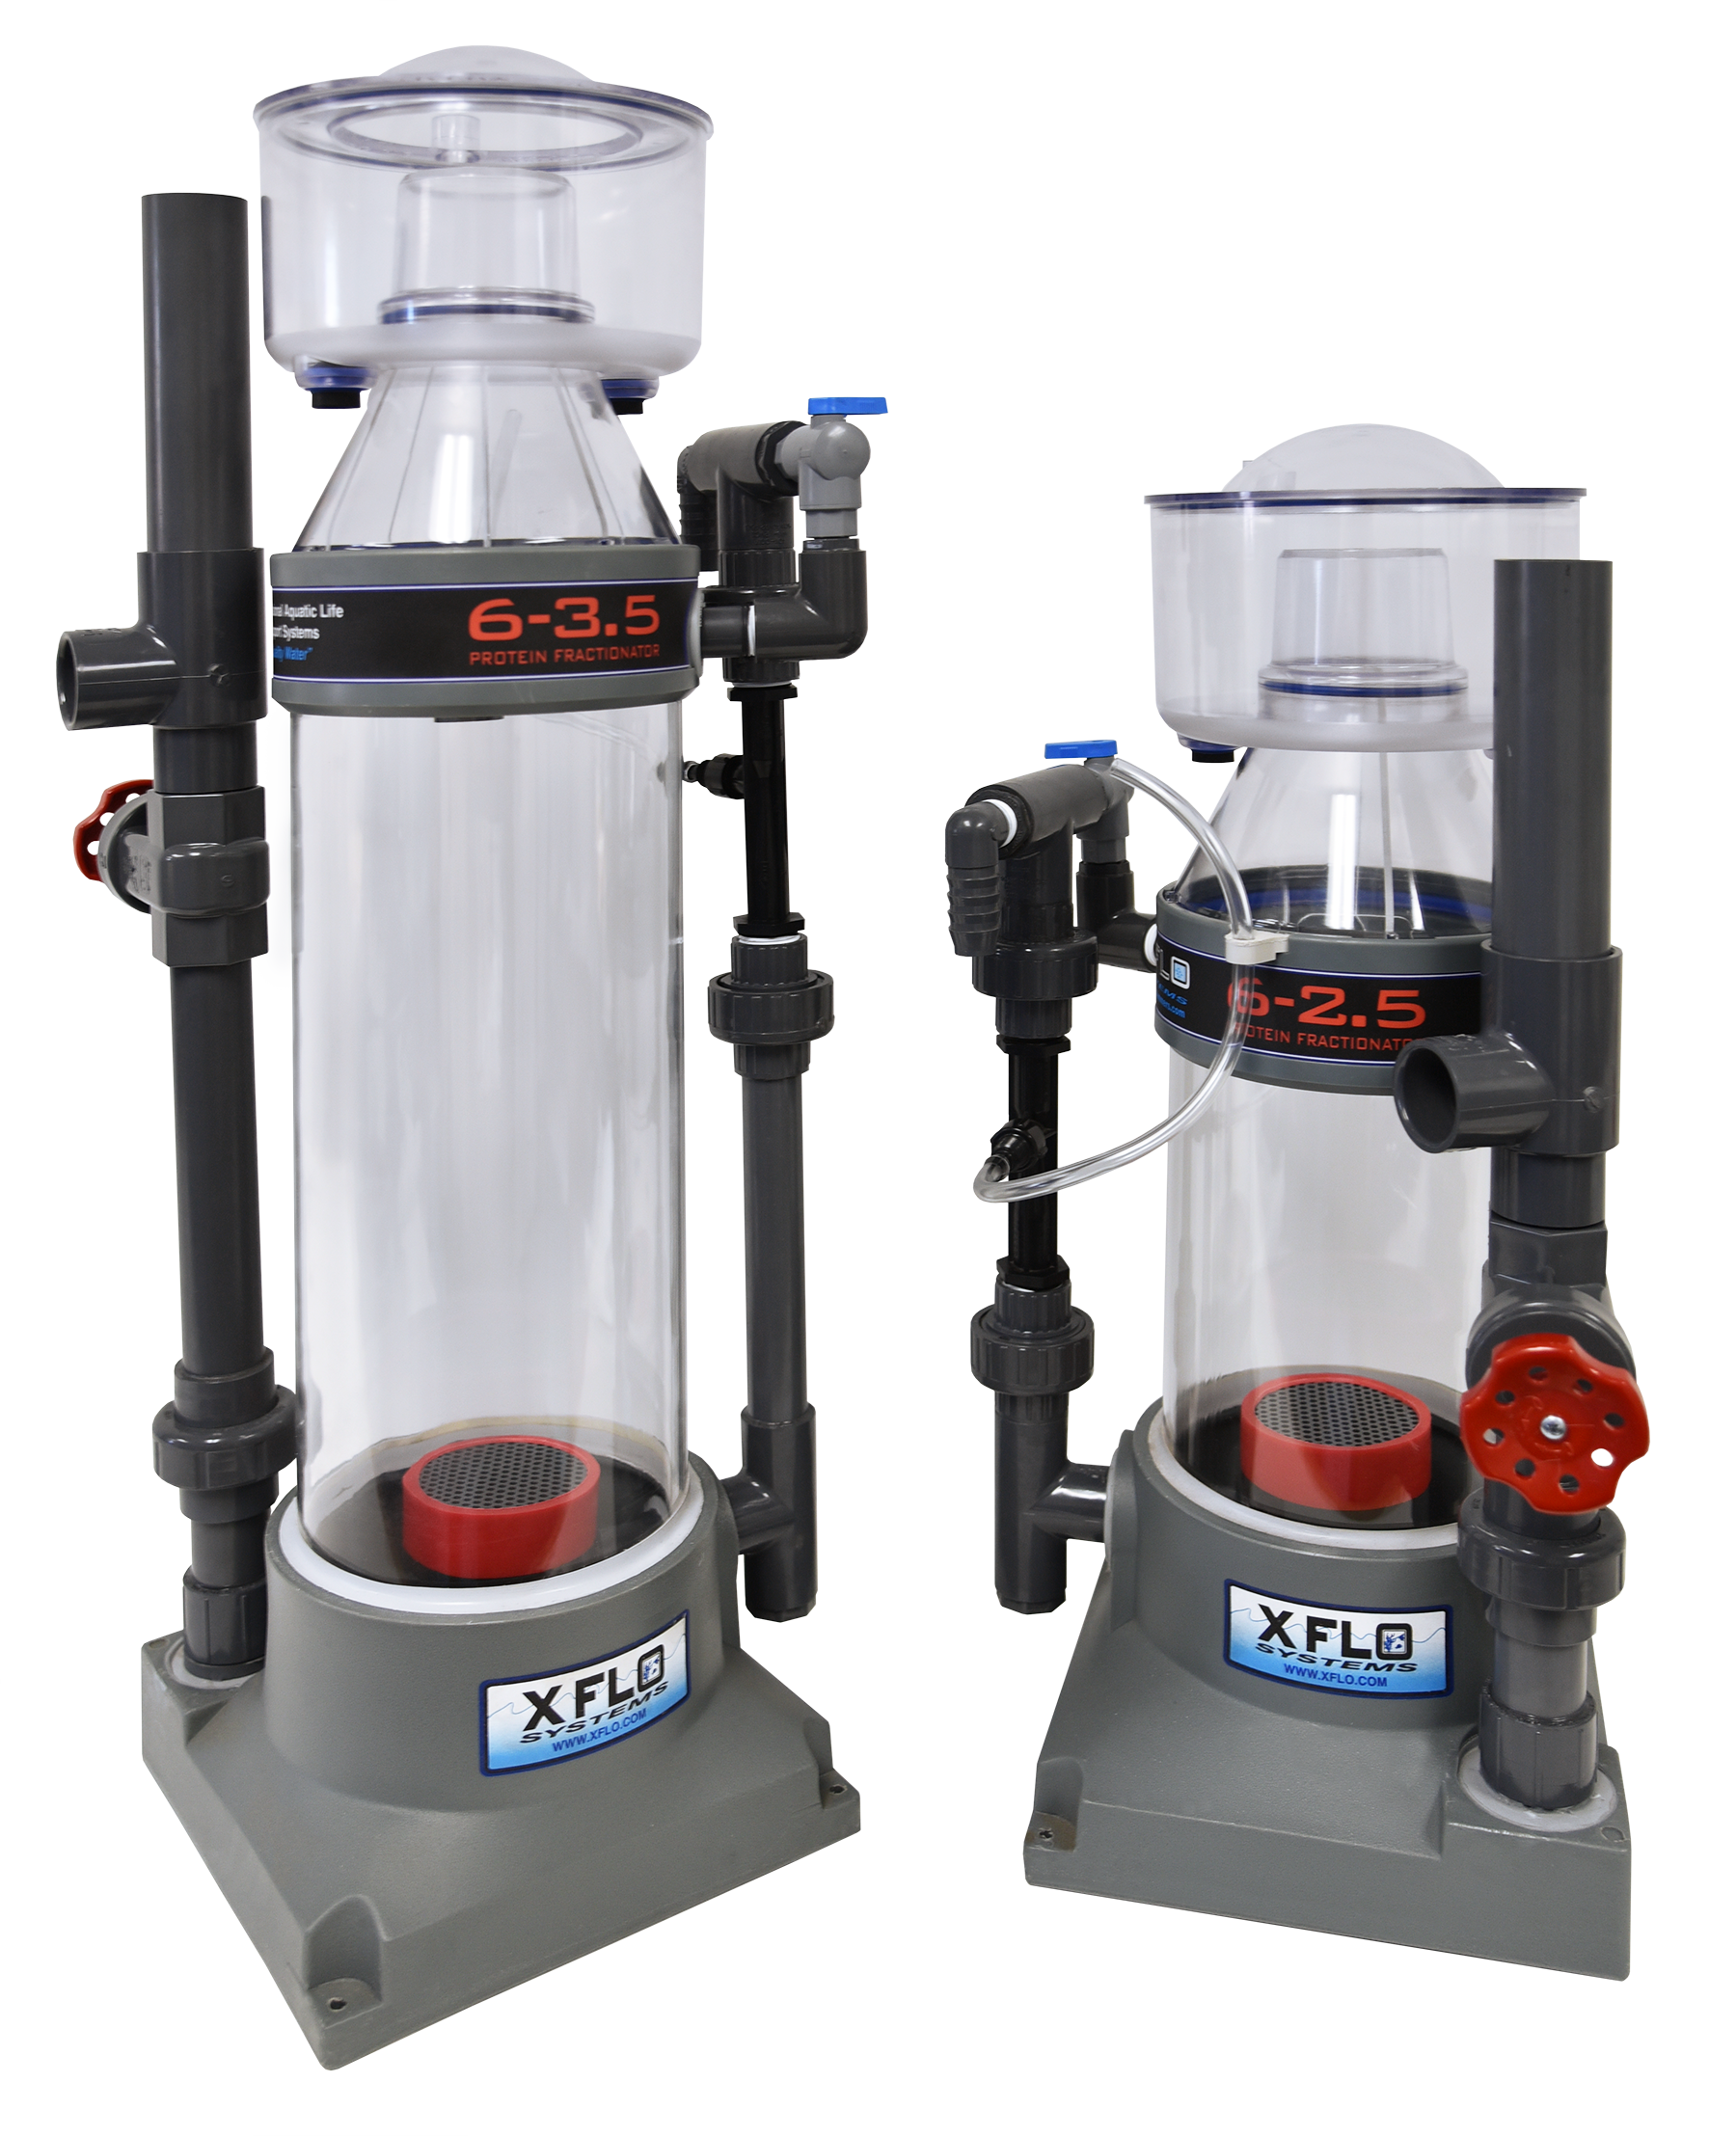 XFLO Protein Skimmer! Professional Grade Equipment for the Advance Aquarist and Life Support.